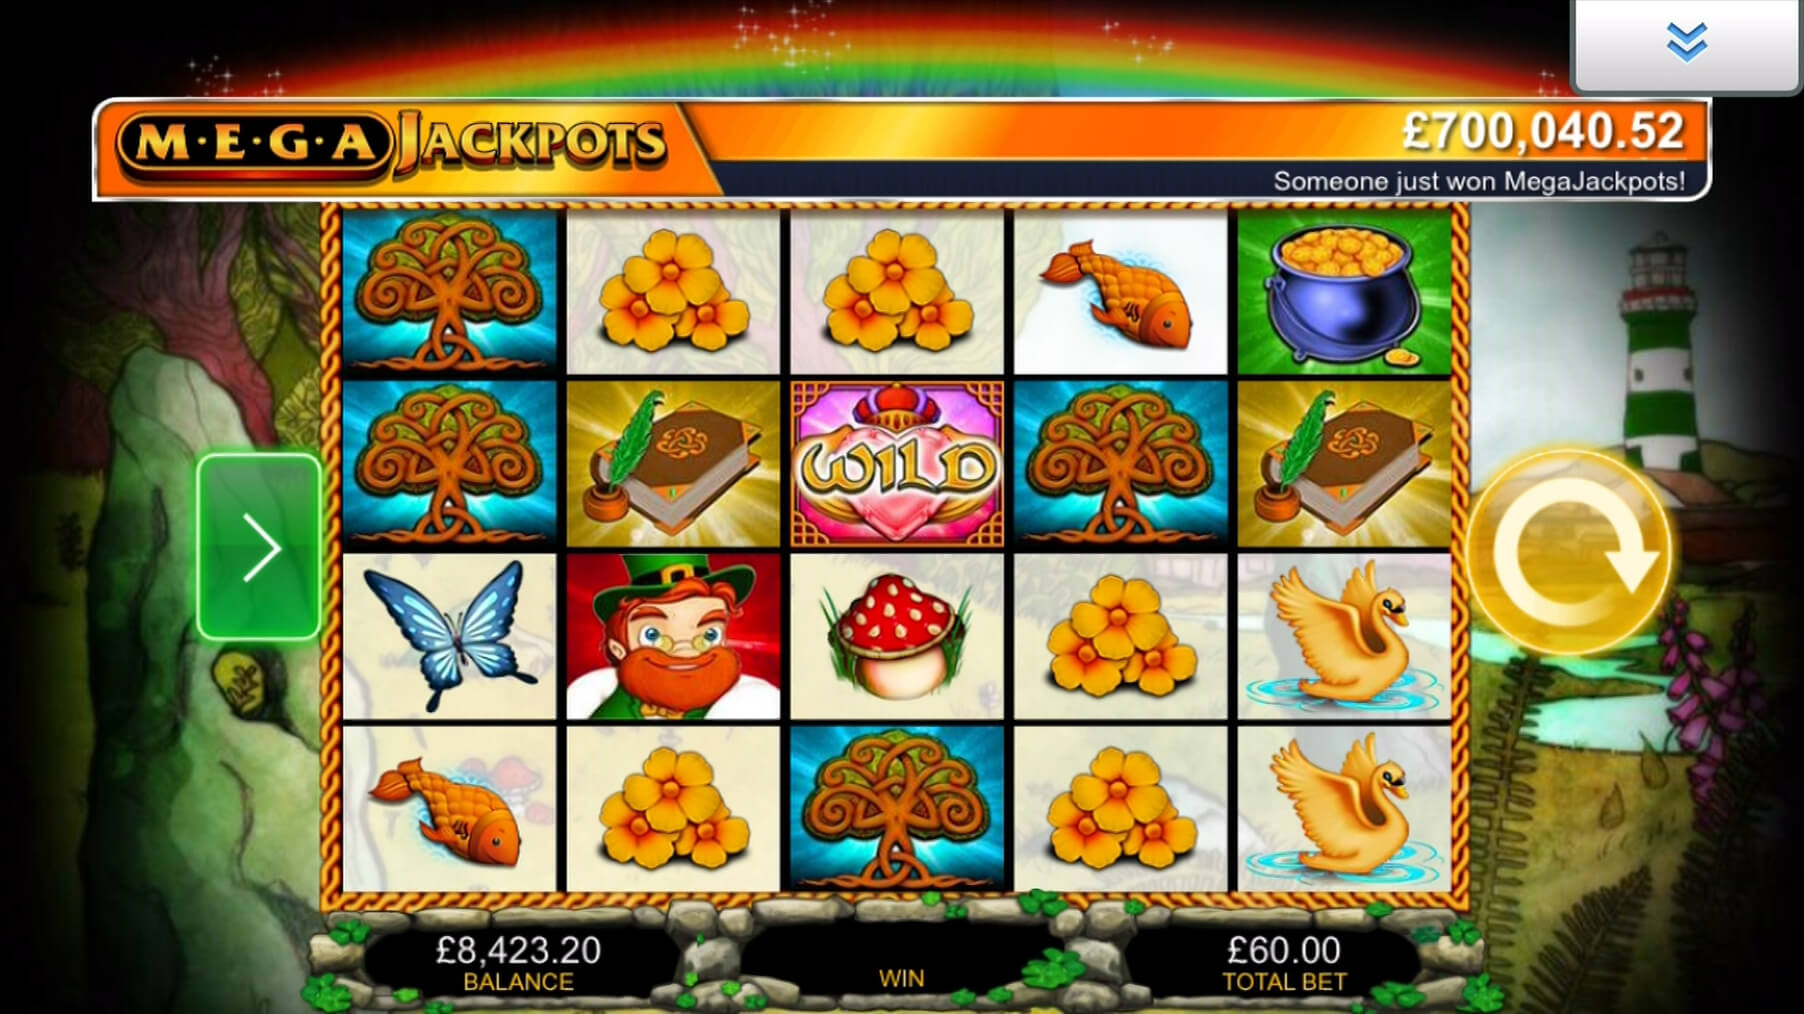 Here you can see a snapshot of the game: MegaJackpots Isle O'Plenty